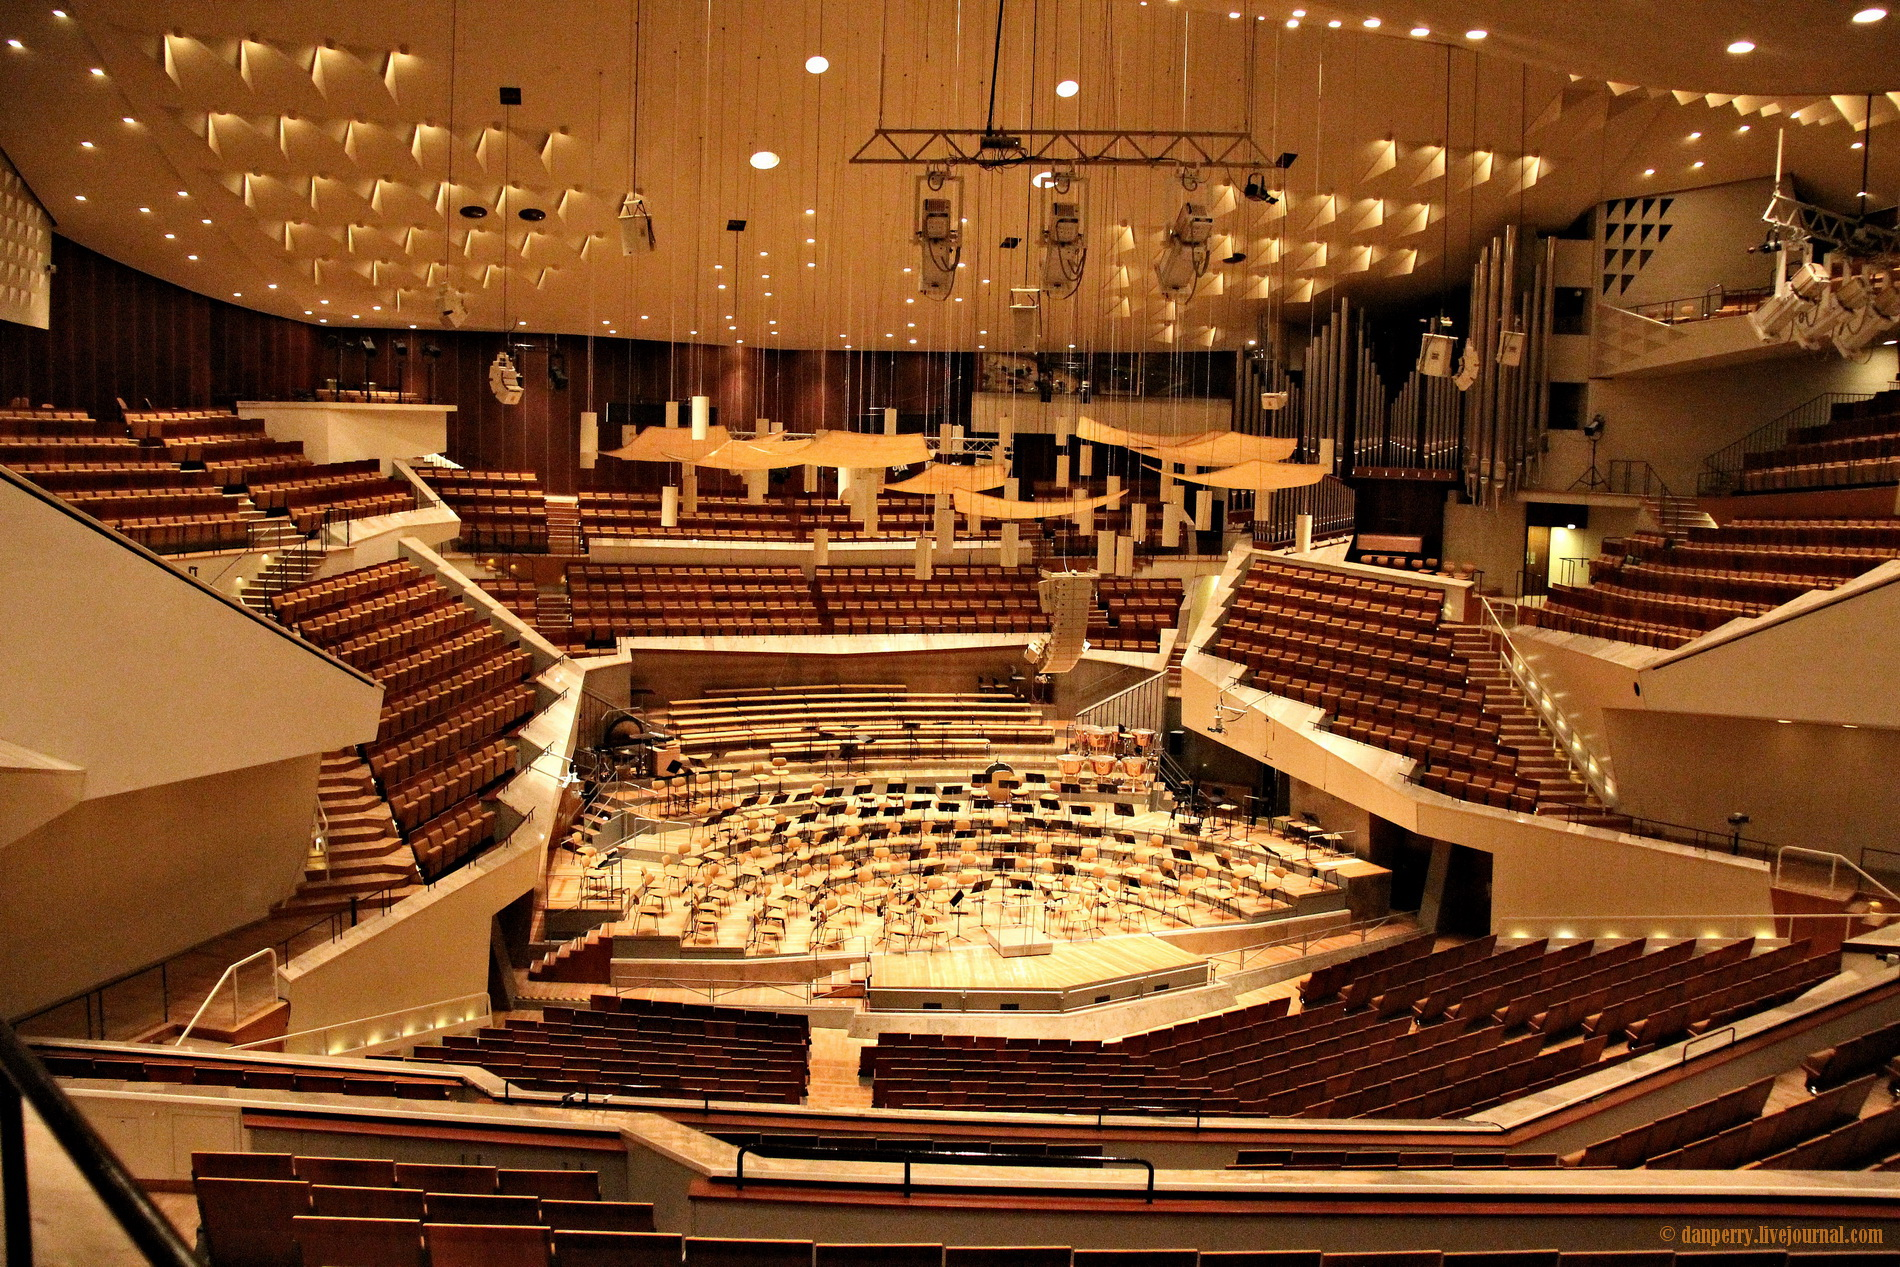 Berliner Philharmonie Berlin, Berliner Philharmonie concert Hall, Berlin - 1 May 2011 - danperry